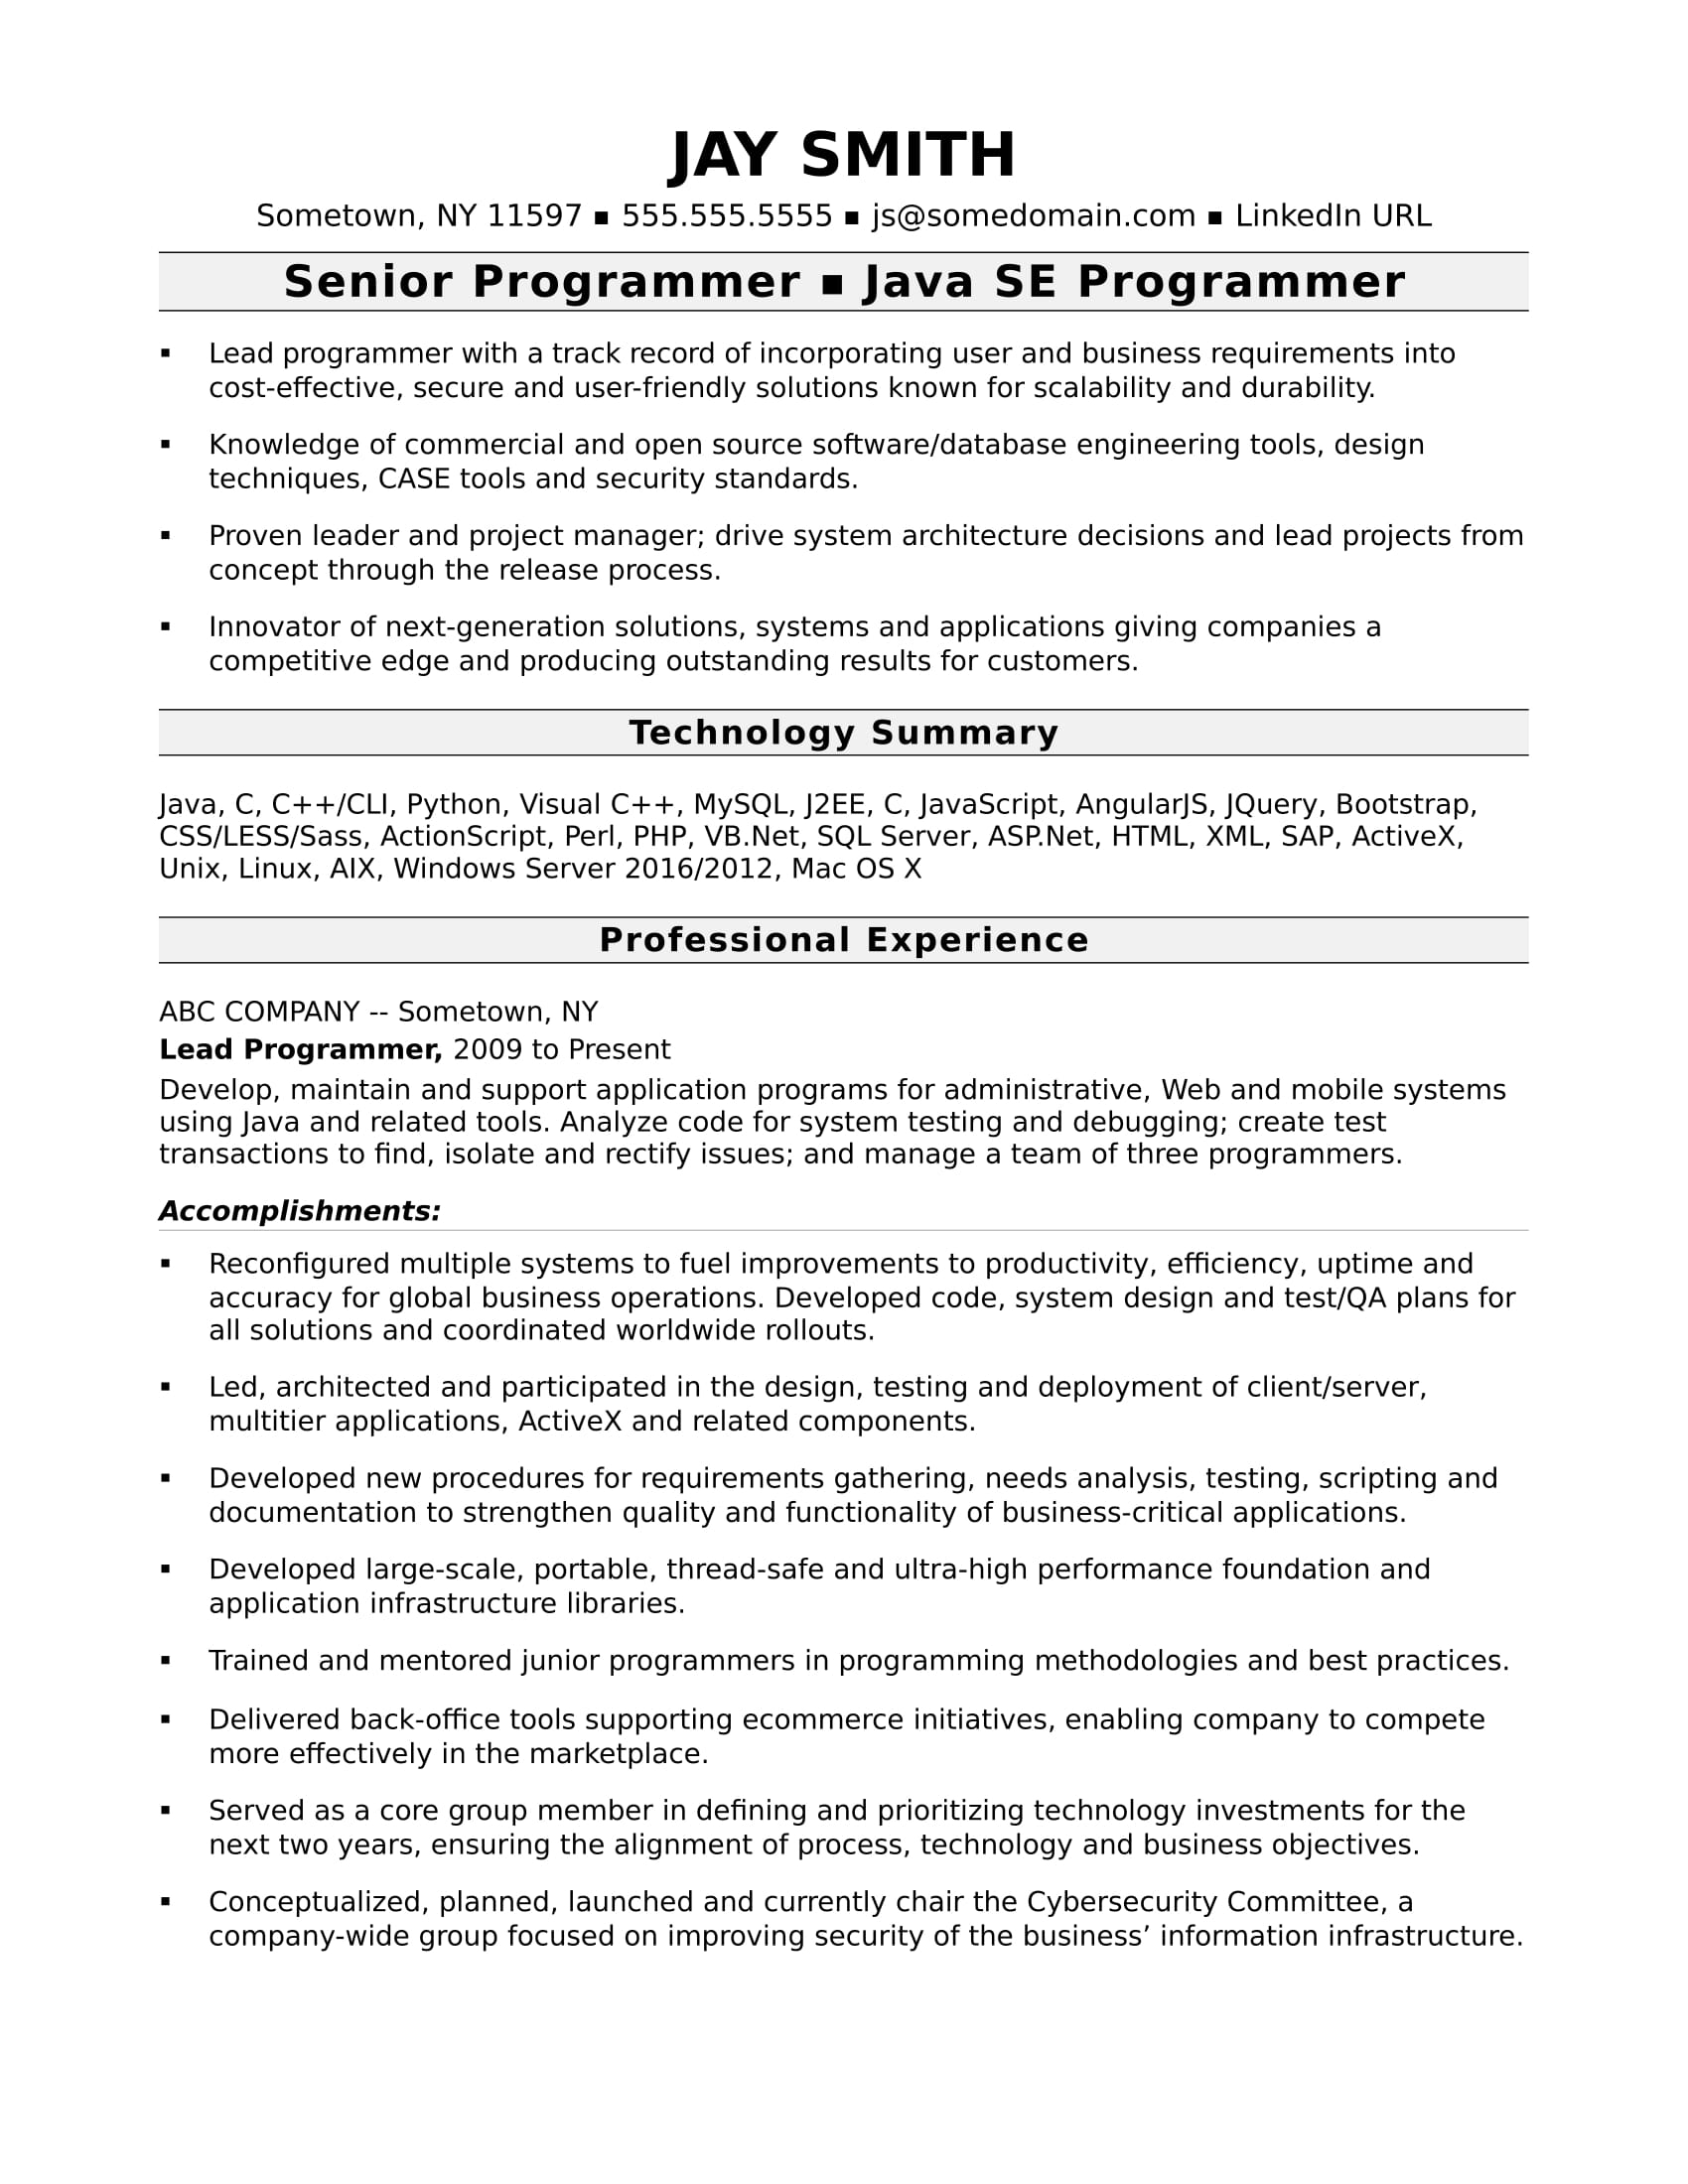 Delightful Sample Resume For An Experienced Computer Programmer In Programming Resume Examples